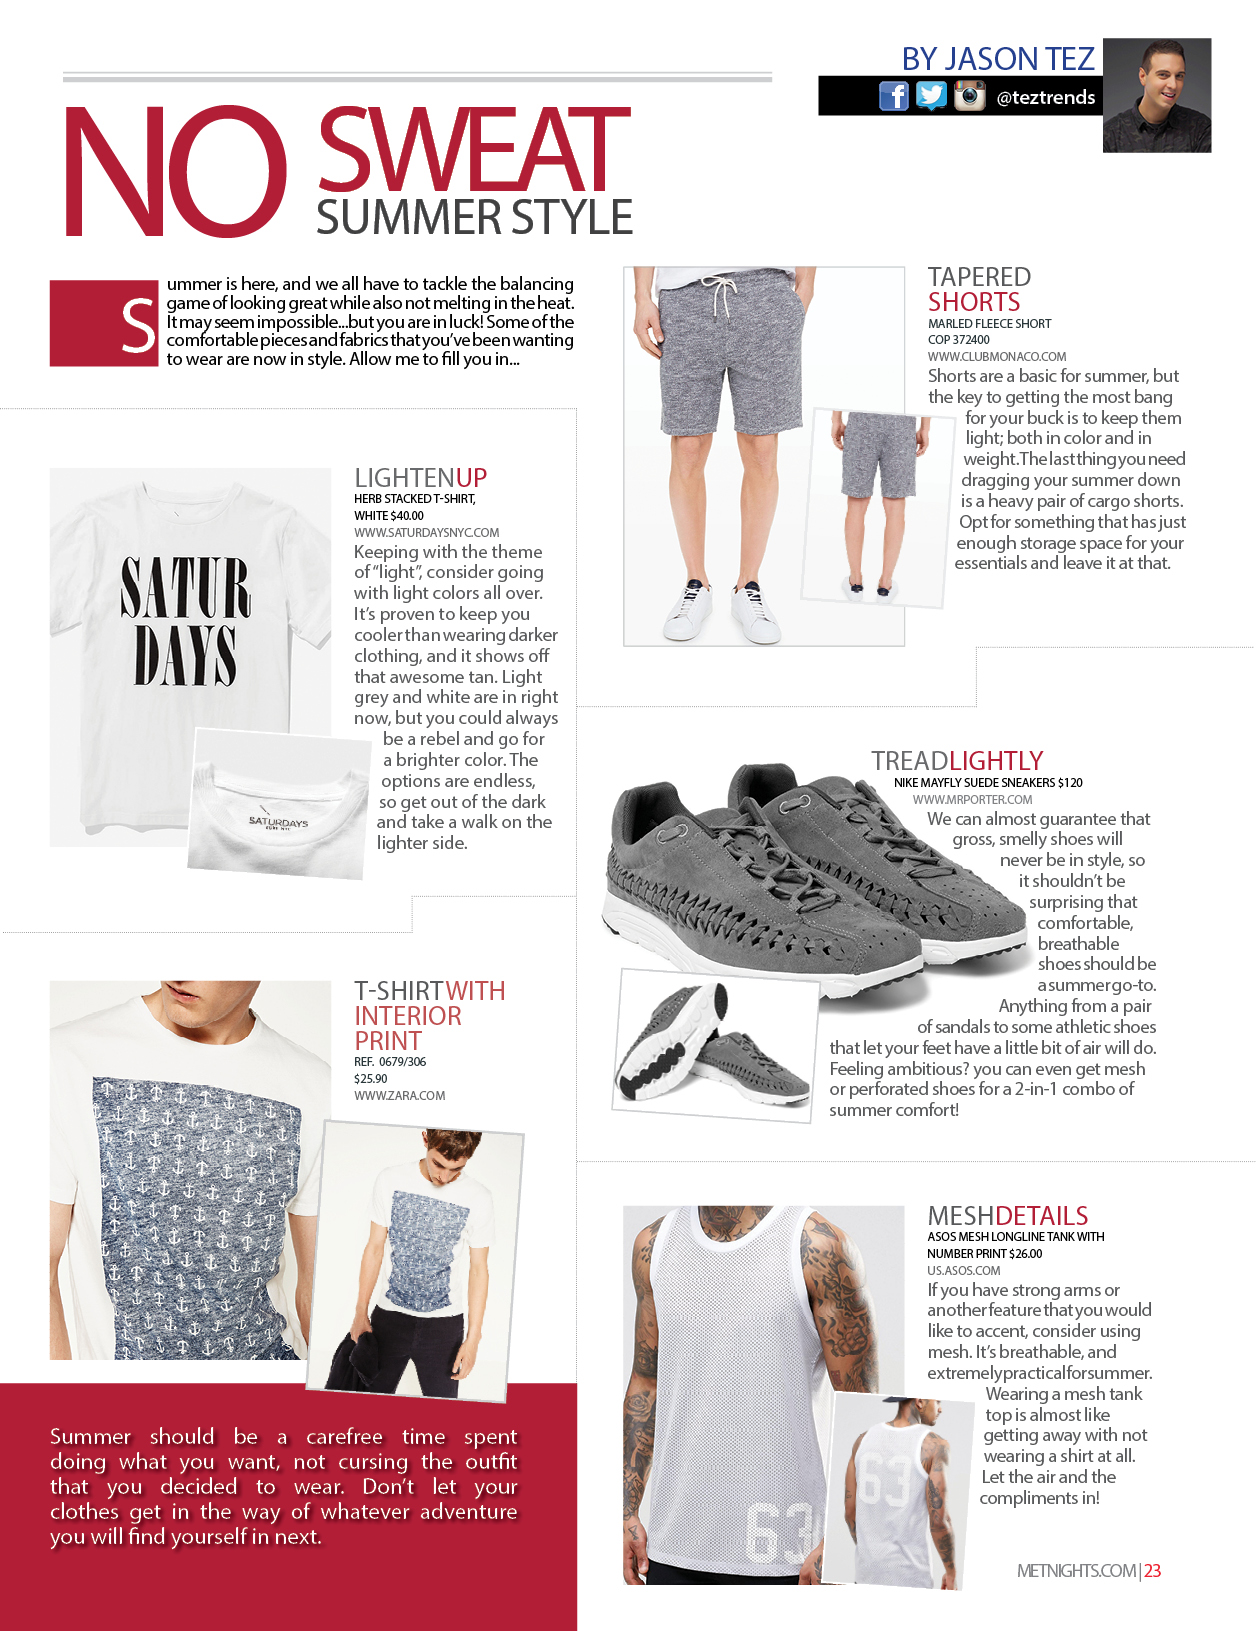 No Sweat Summer Style